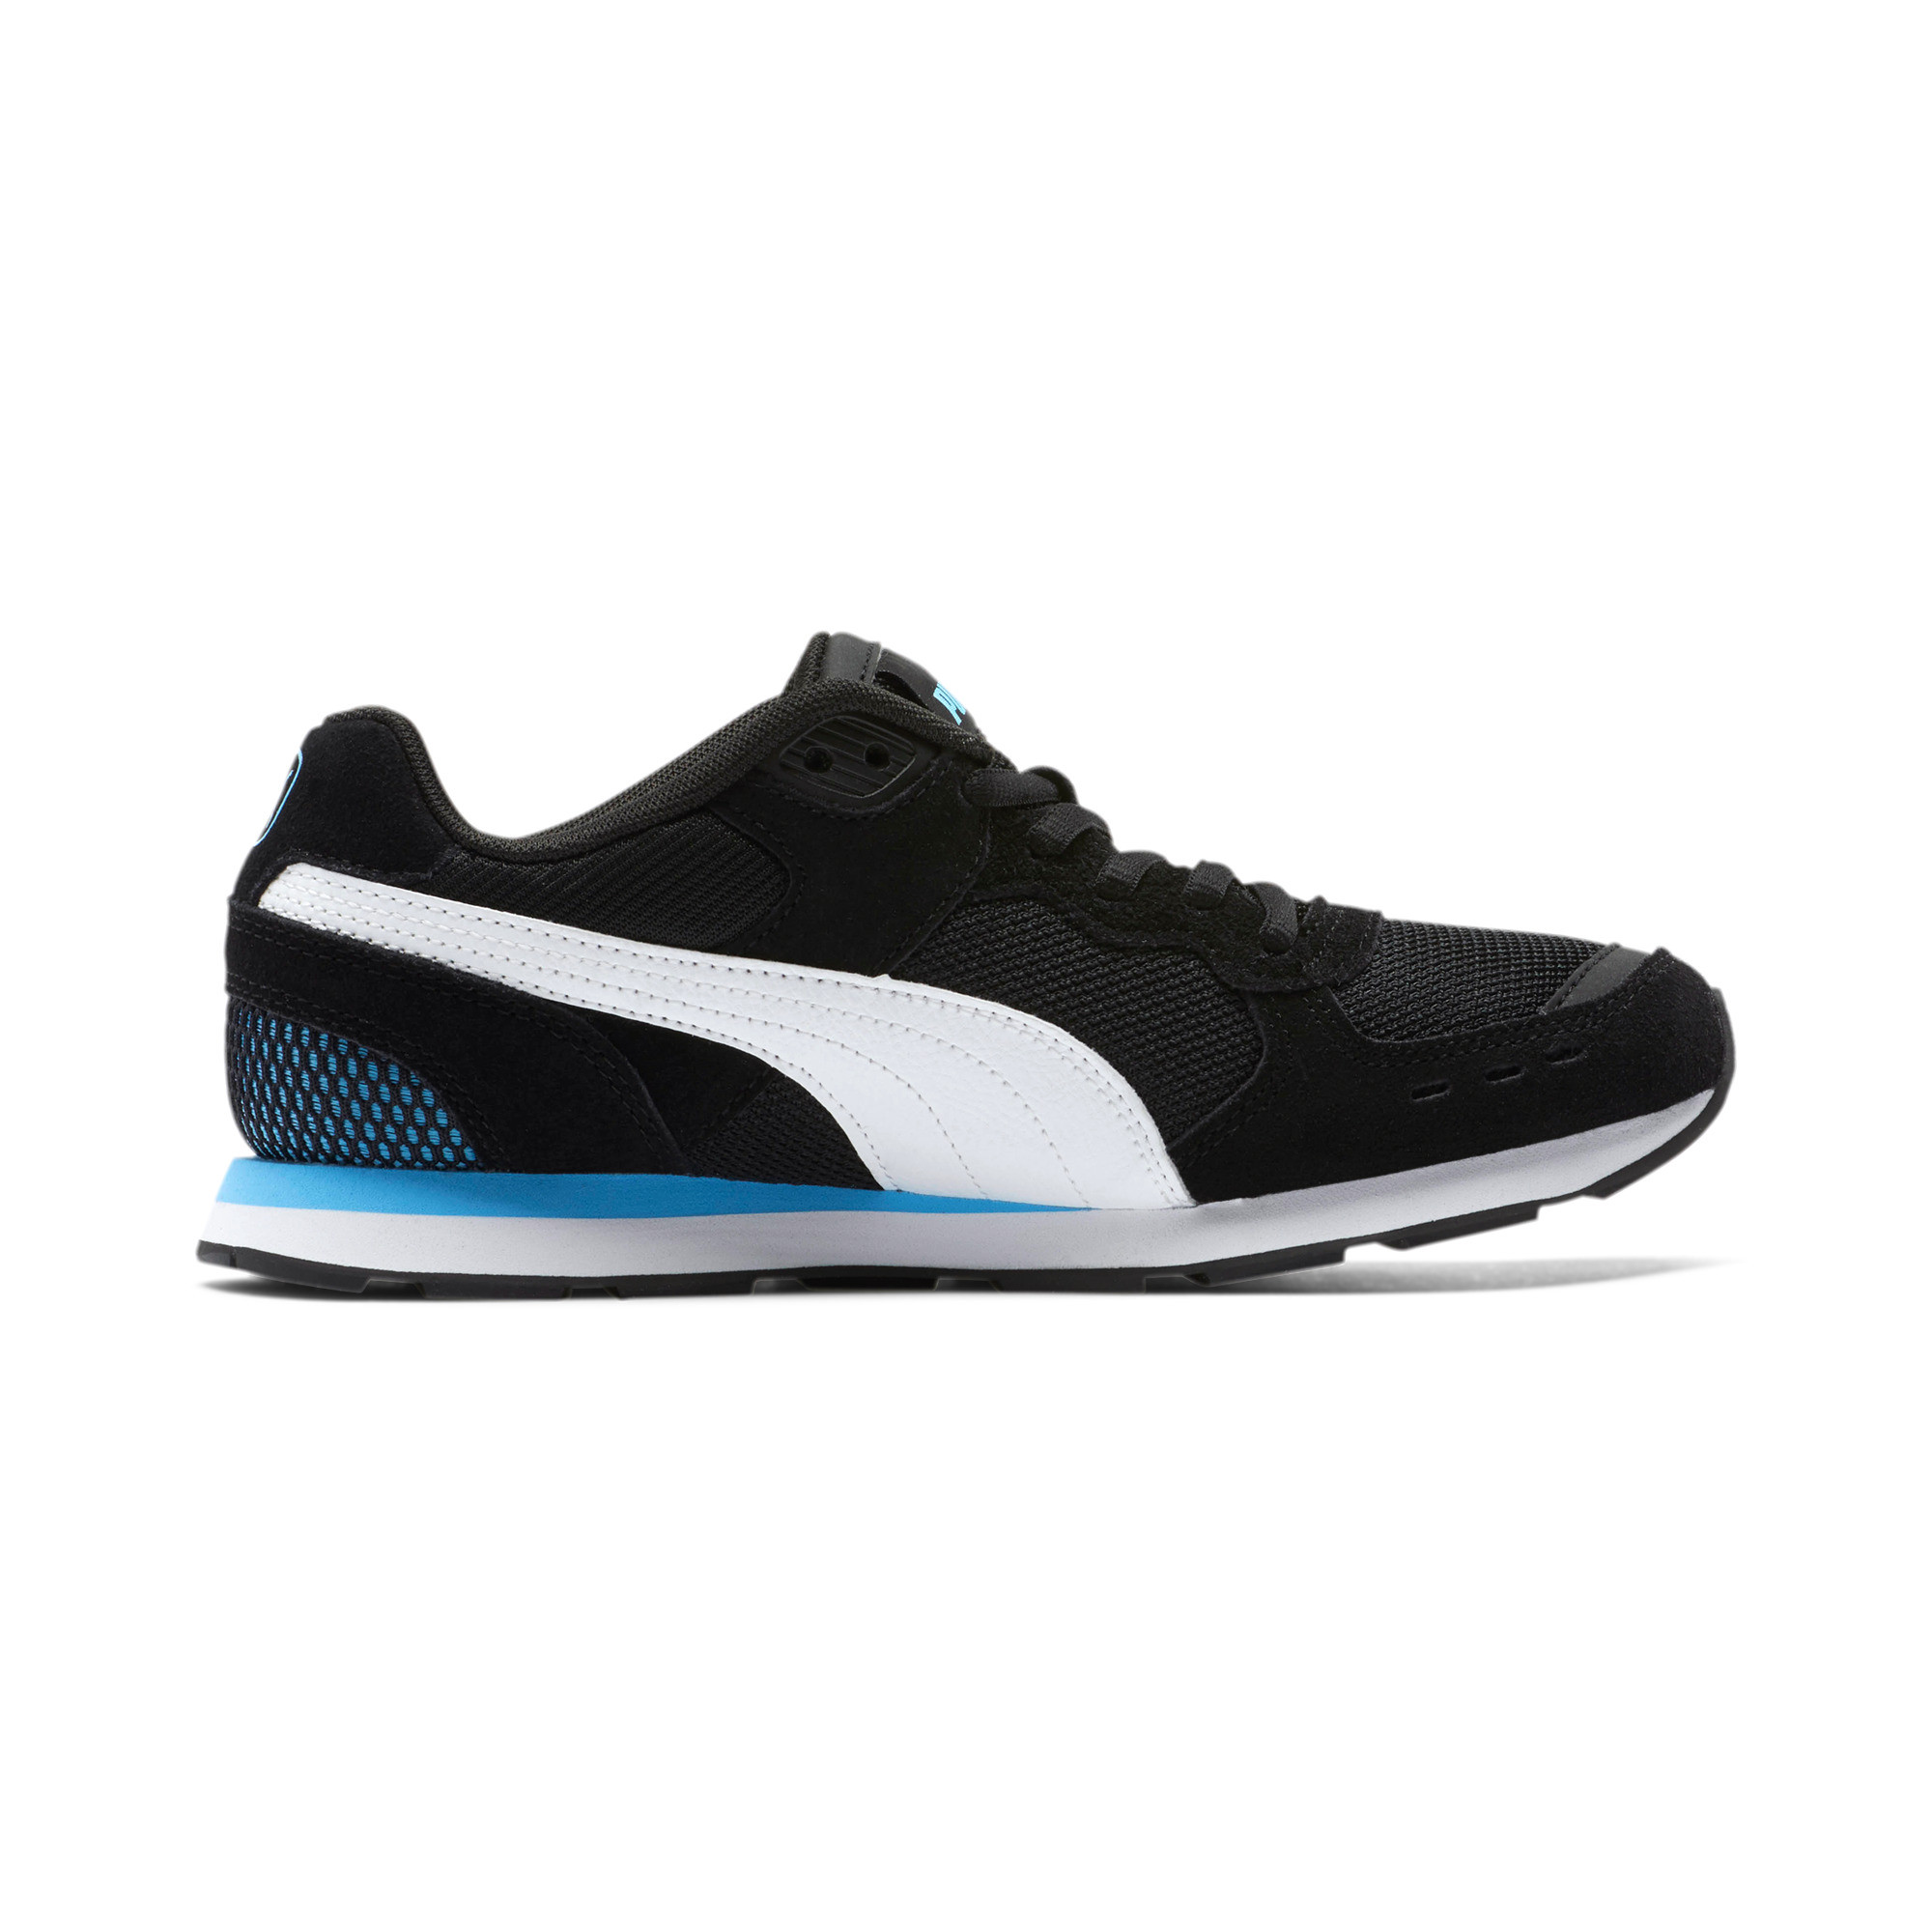 PUMA-Women-039-s-Vista-Sneakers thumbnail 6